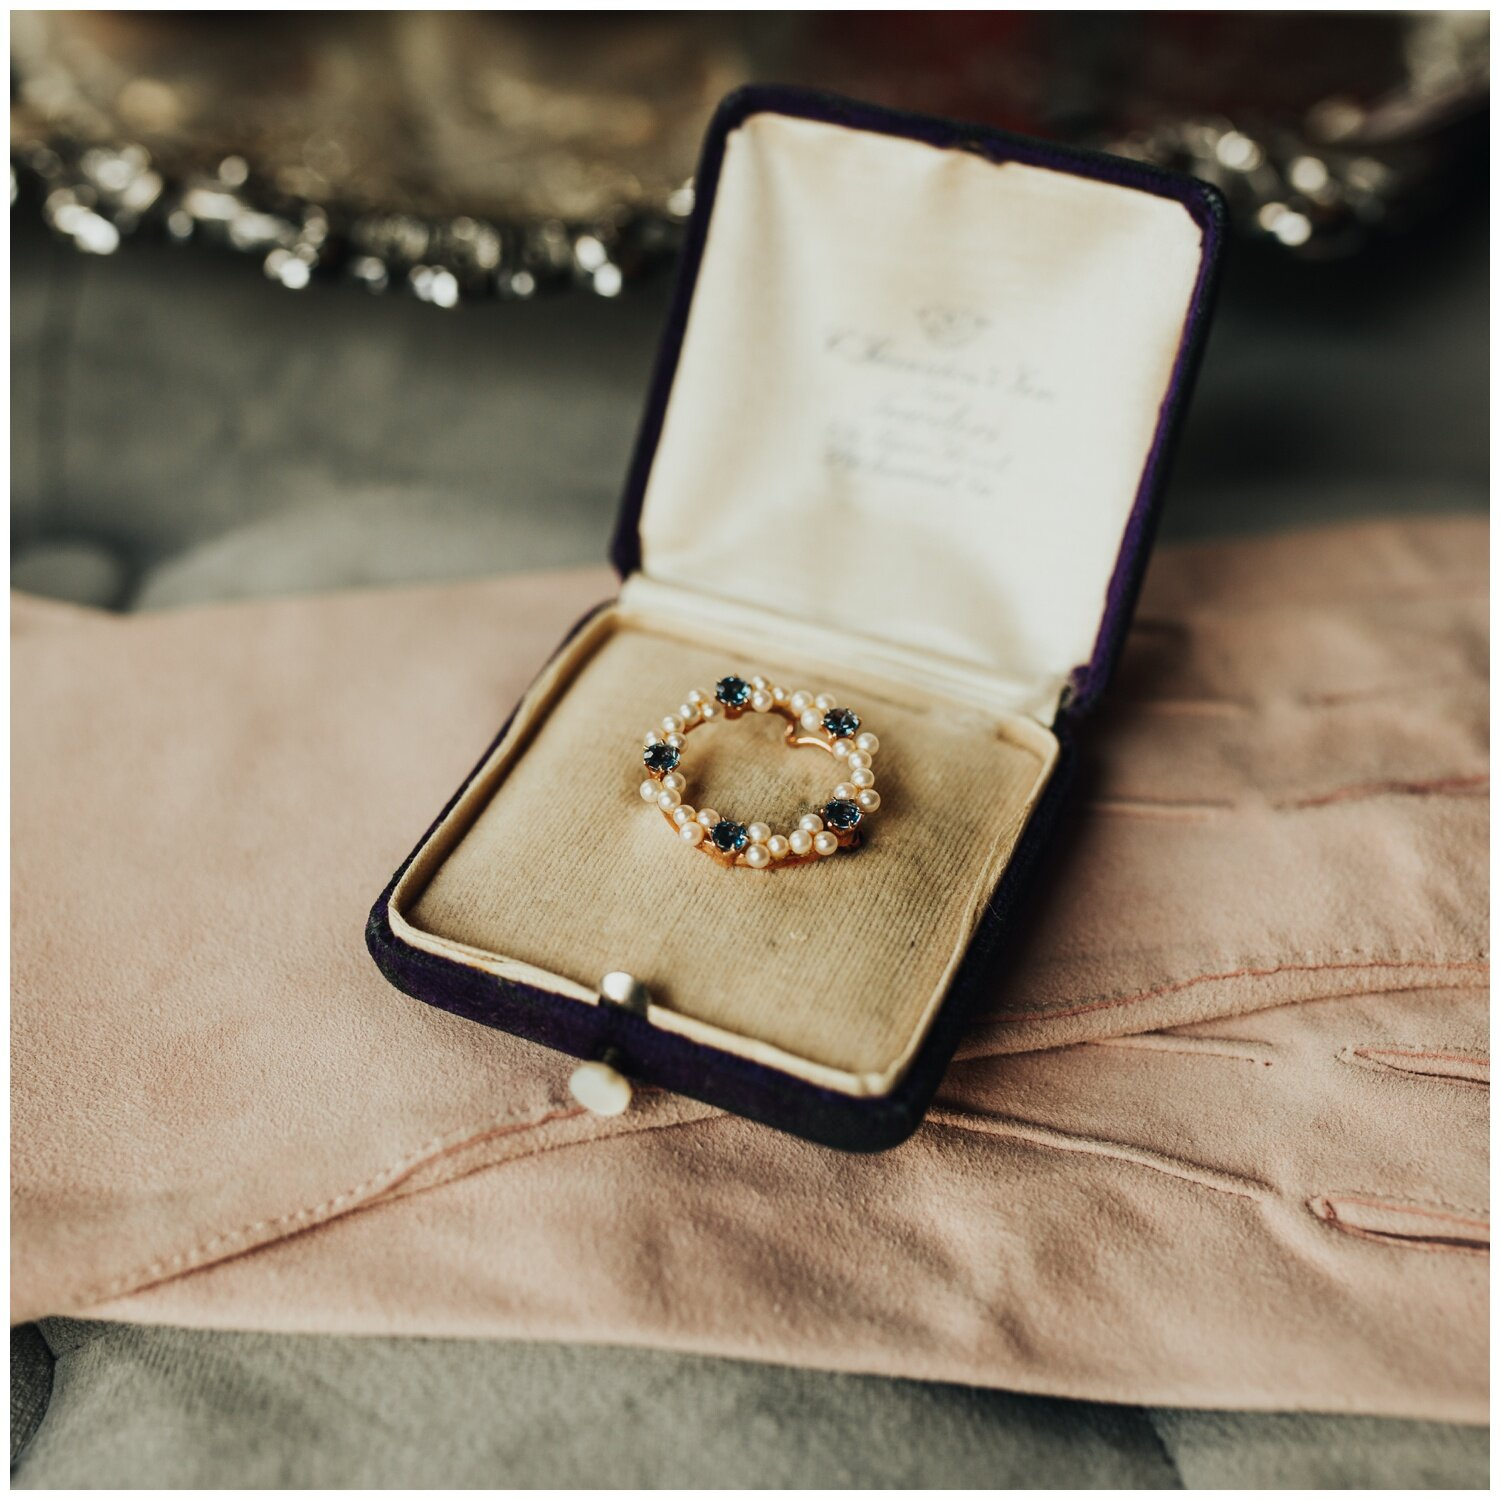 Modern Wedding at Ma Maison in Dripping Springs, Austin, Texas (Joshua and Parisa – Austin Wedding Photographer)_0004.jpg